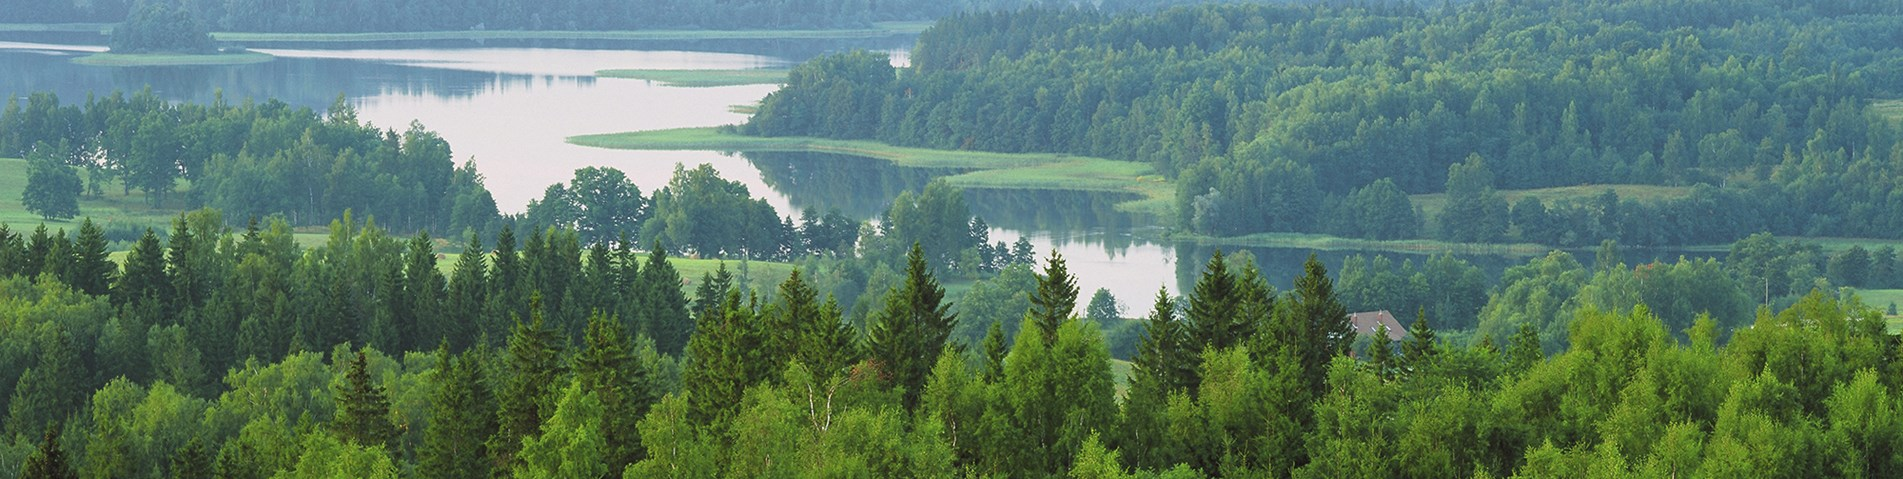 late spring in Latvian forests_banner.jpg